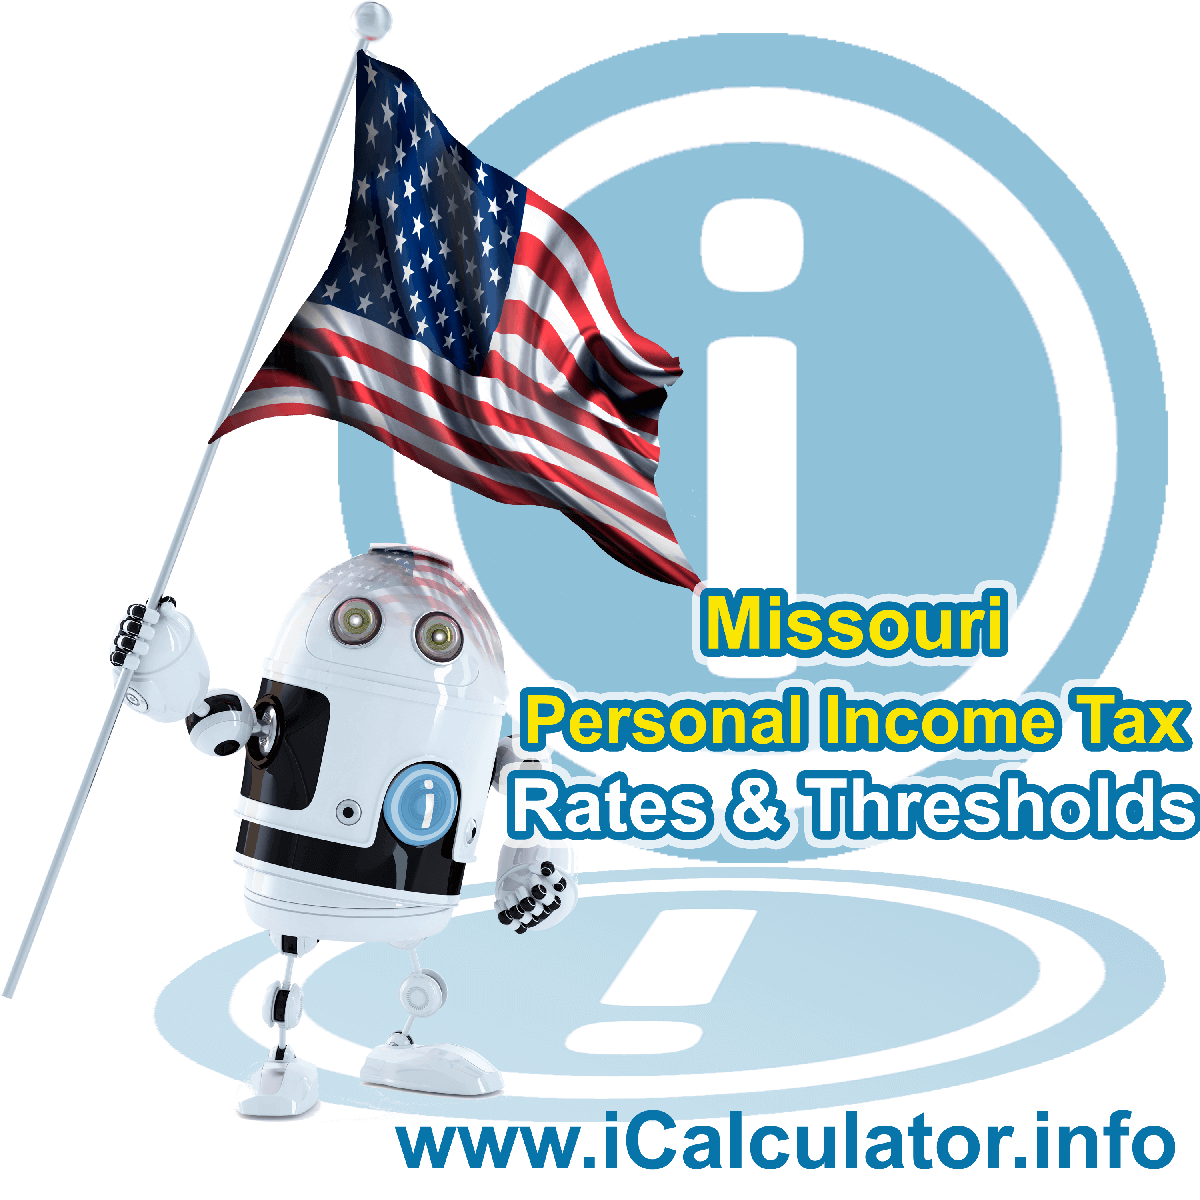 Missouri State Tax Tables 2020. This image displays details of the Missouri State Tax Tables for the 2020 tax return year which is provided in support of the 2020 US Tax Calculator